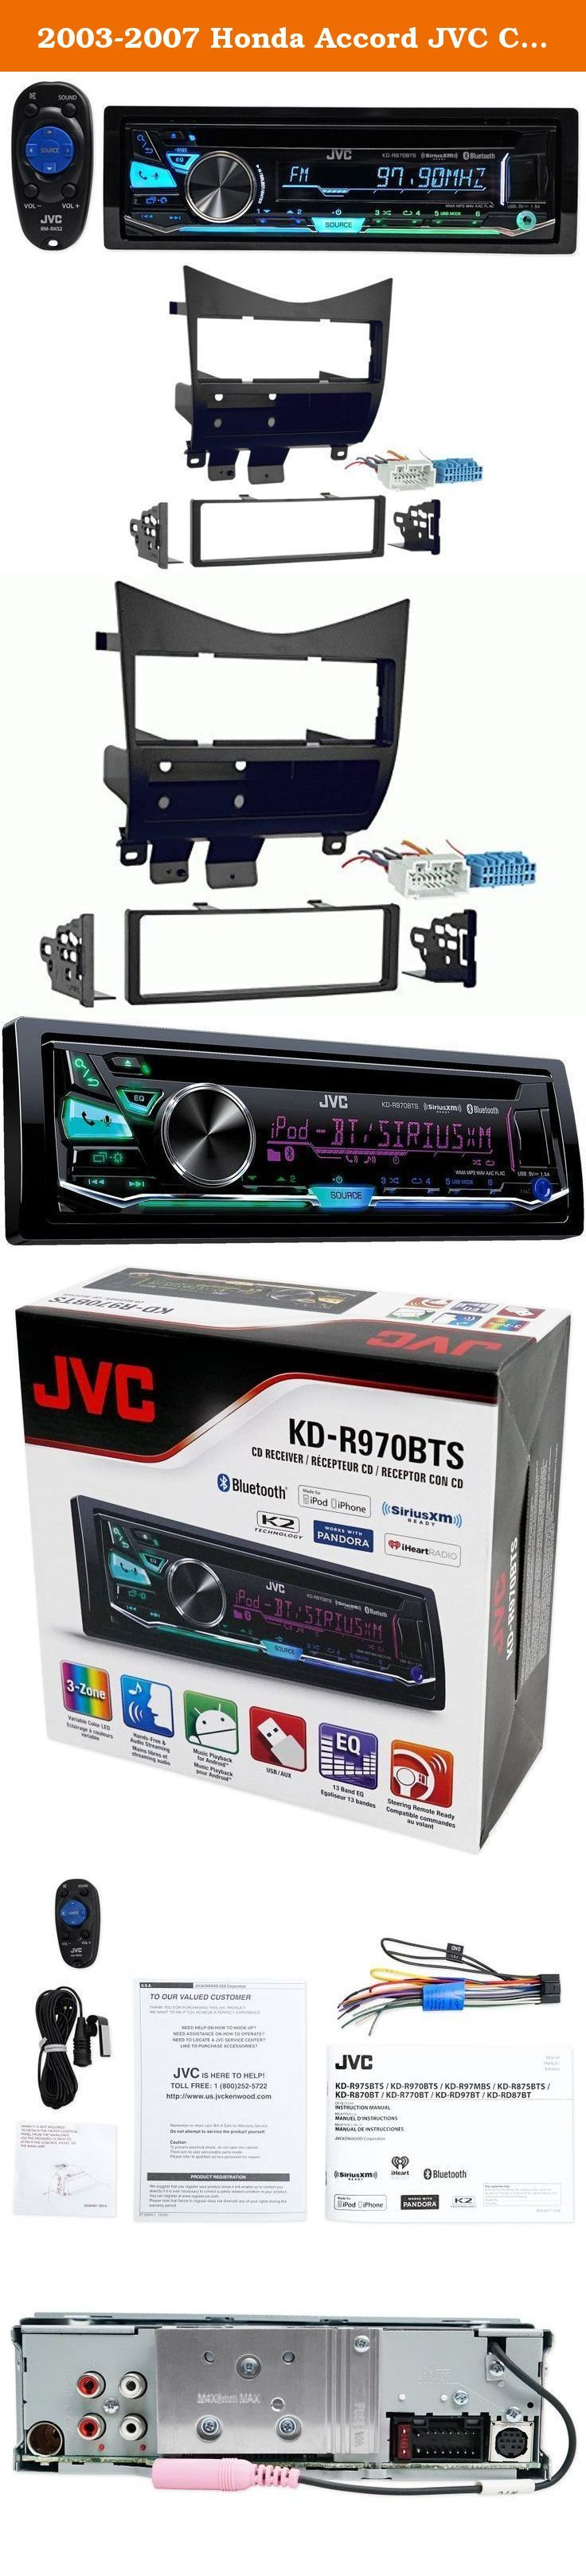 2003-2007 Honda Accord JVC Car Stereo CD Player/Receiver w/Bluetooth+USB+Pandora. JVC KD-R970BTS is the best value on the market for a single-din car stereo. You get the most advanced features at a great price with the JVC quality you expect. JVC is our favorite brand for receivers because the quality is great, they look great, and the features they offer are the latest. The KD-R970BTS is a Bluetooth Built-In, 3 Zone Variable Color Illumination, SiriusXM Ready detchable-face in-dash CD...